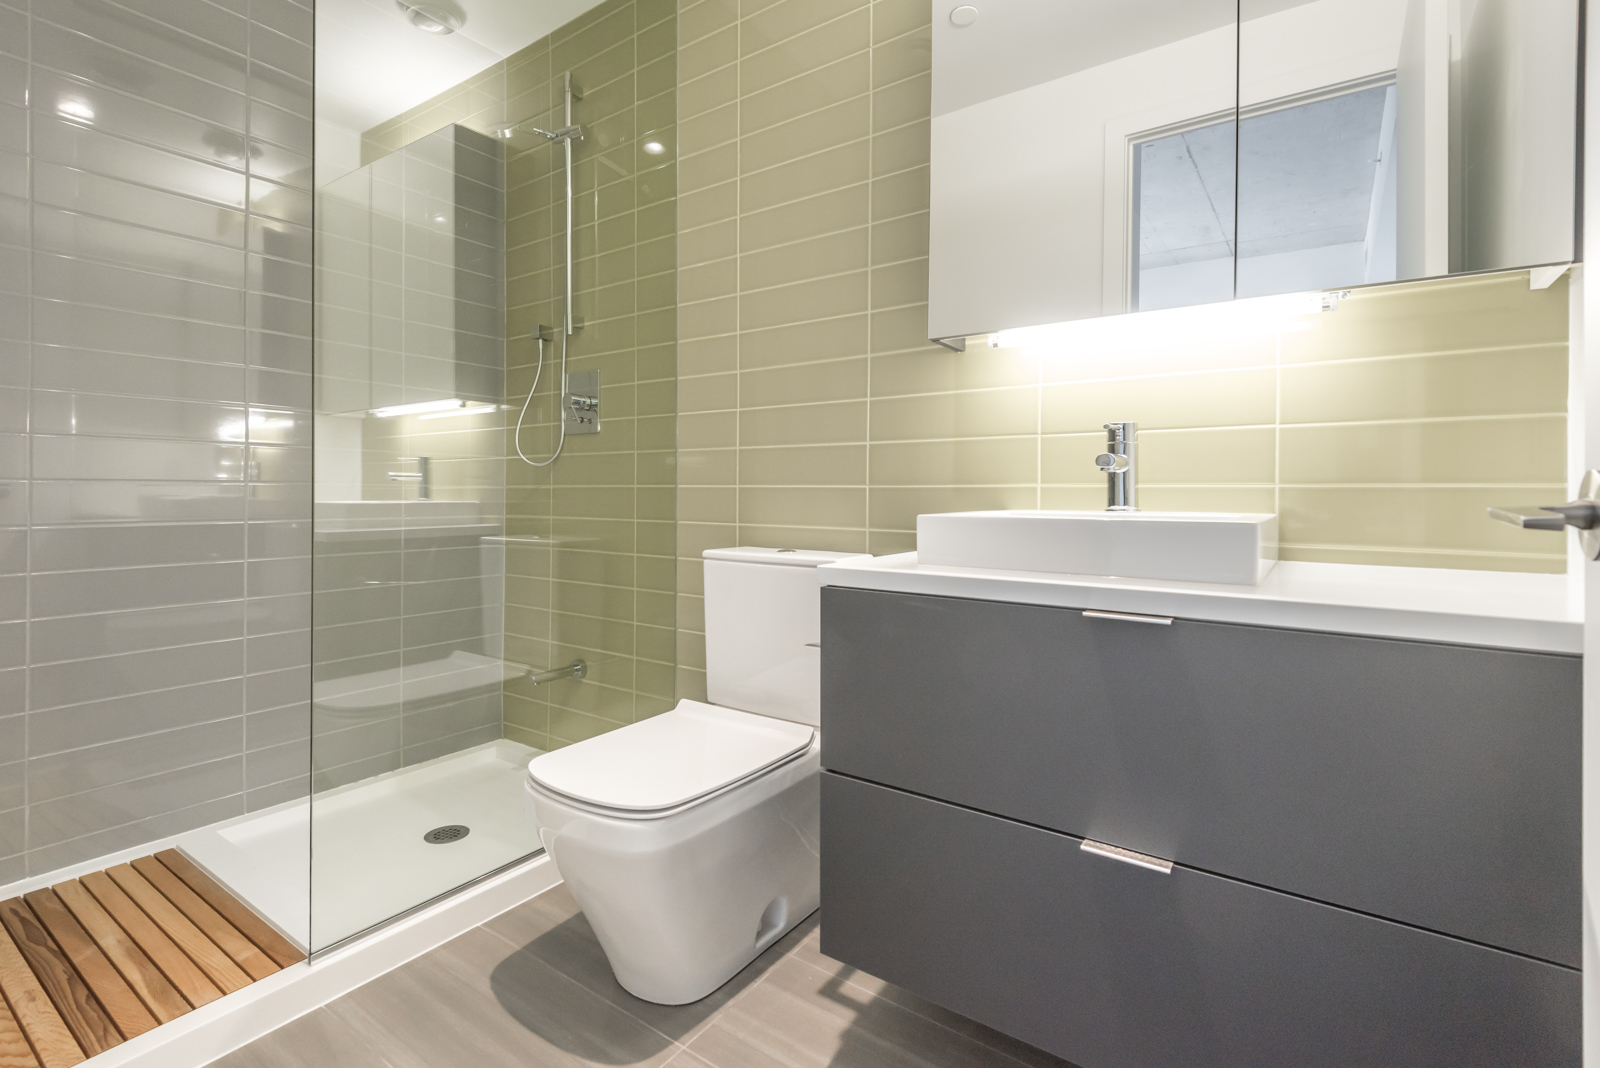 Another bathroom pic, and this one is of second bathroom. It's less in size, but it's rather beautiful with its use of wood and colour. Also, the layout is rather striking.